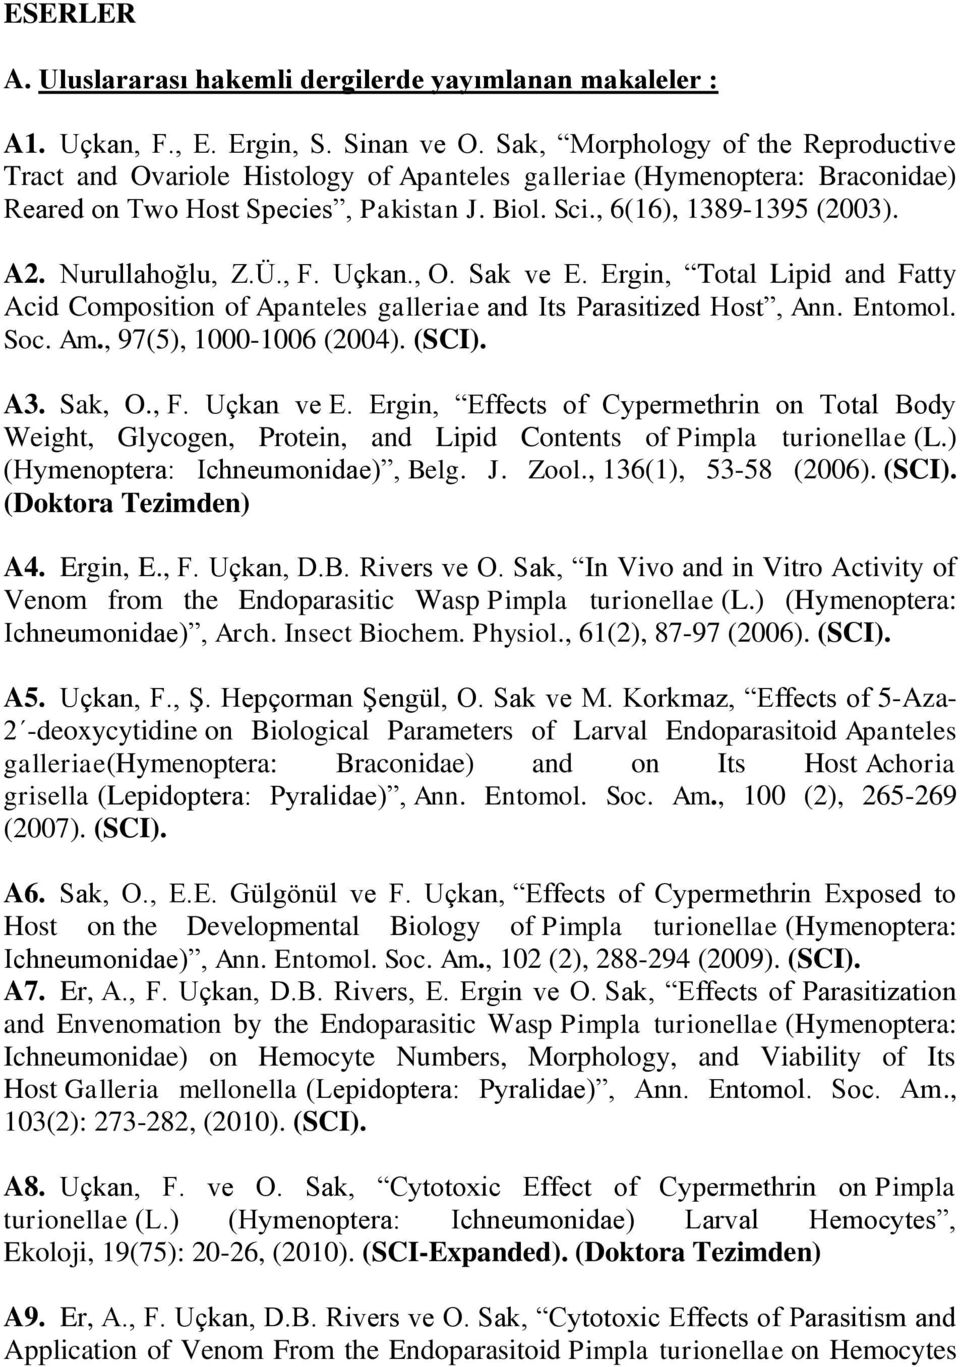 Nurullahoğlu, Z.Ü., F. Uçkan., O. Sak ve E. Ergin, Total Lipid and Fatty Acid Composition of Apanteles galleriae and Its Parasitized Host, Ann. Entomol. Soc. Am., 97(5), 1000-1006 (2004). (SCI). A3.